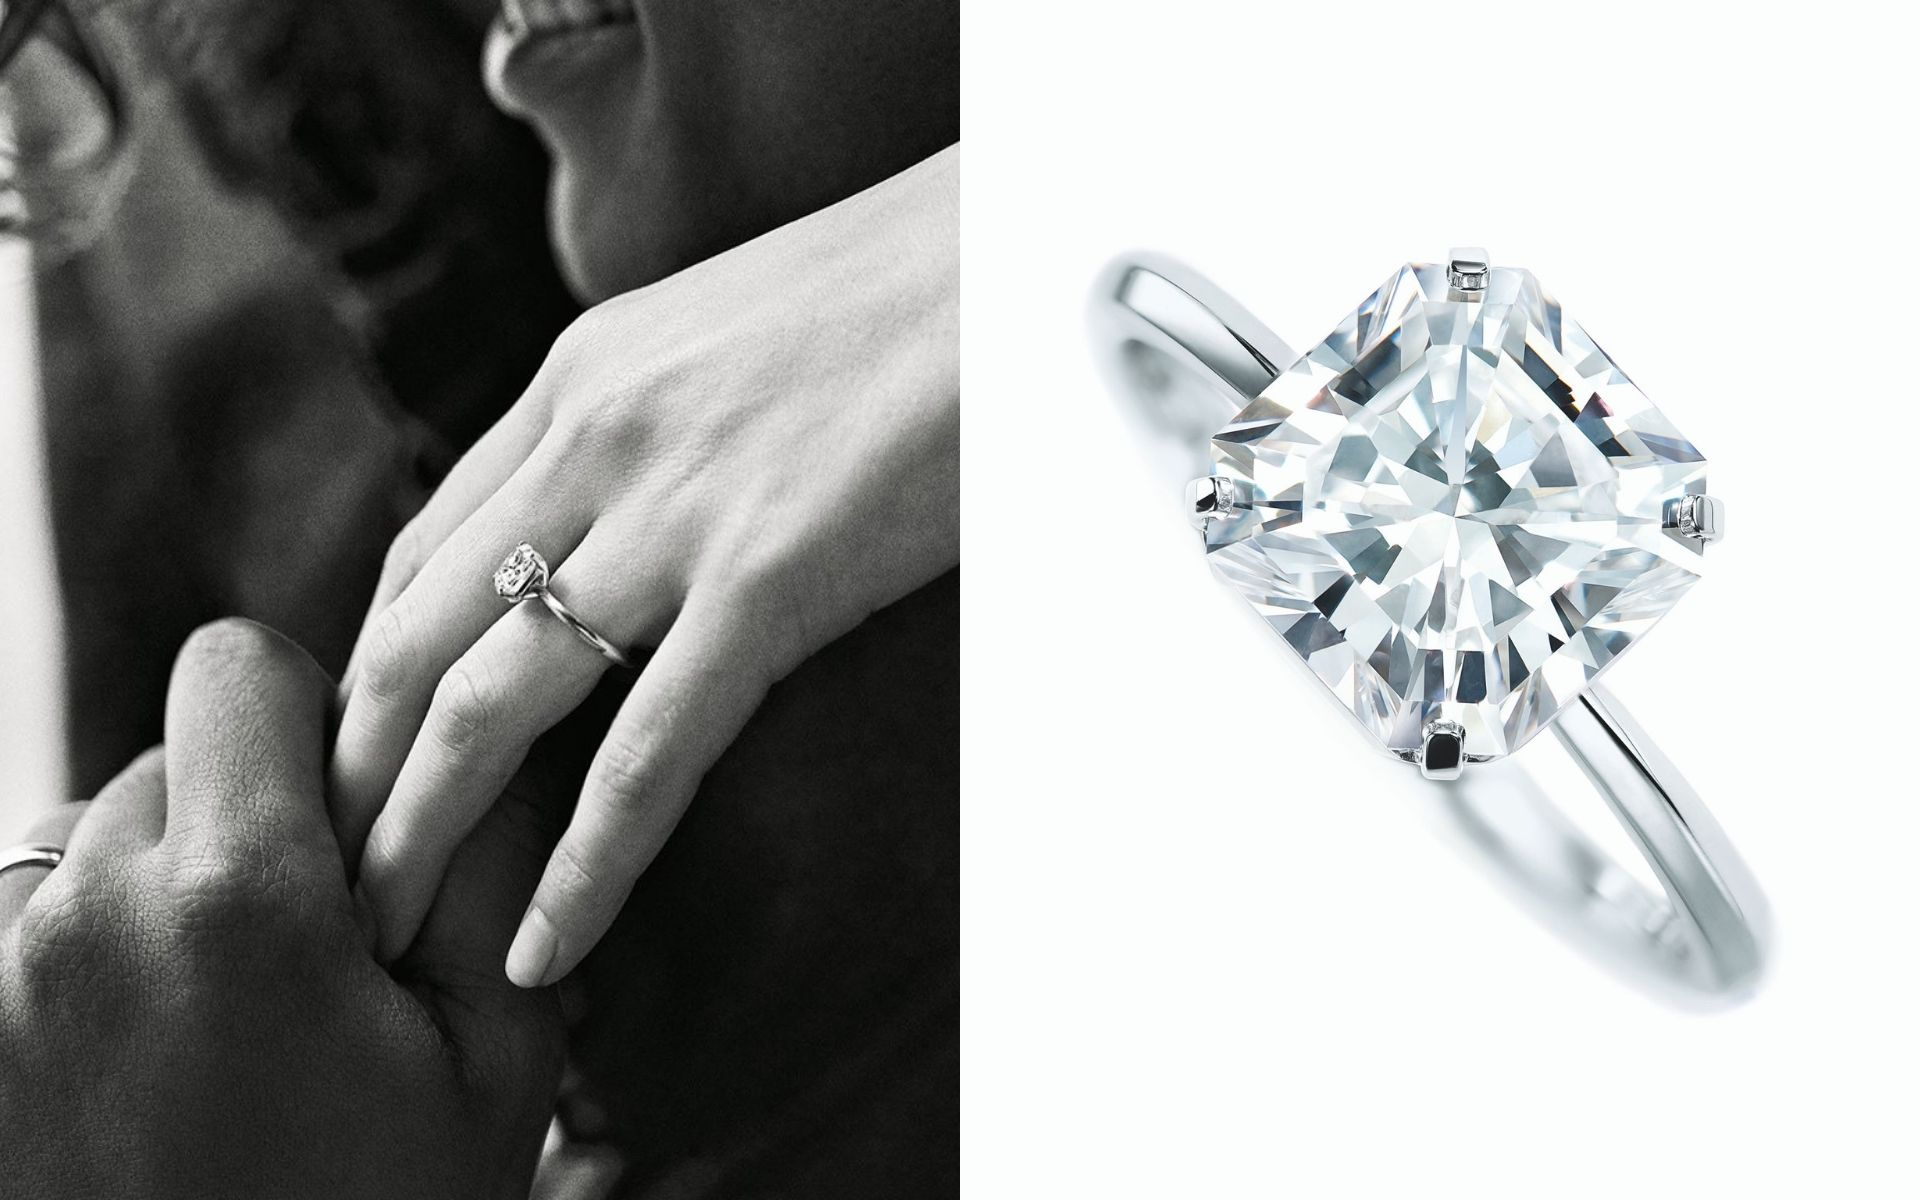 d85d8573b0ef92 The Brilliance Of True Love Captured In Tiffany & Co.'s Finest Engagement  Ring